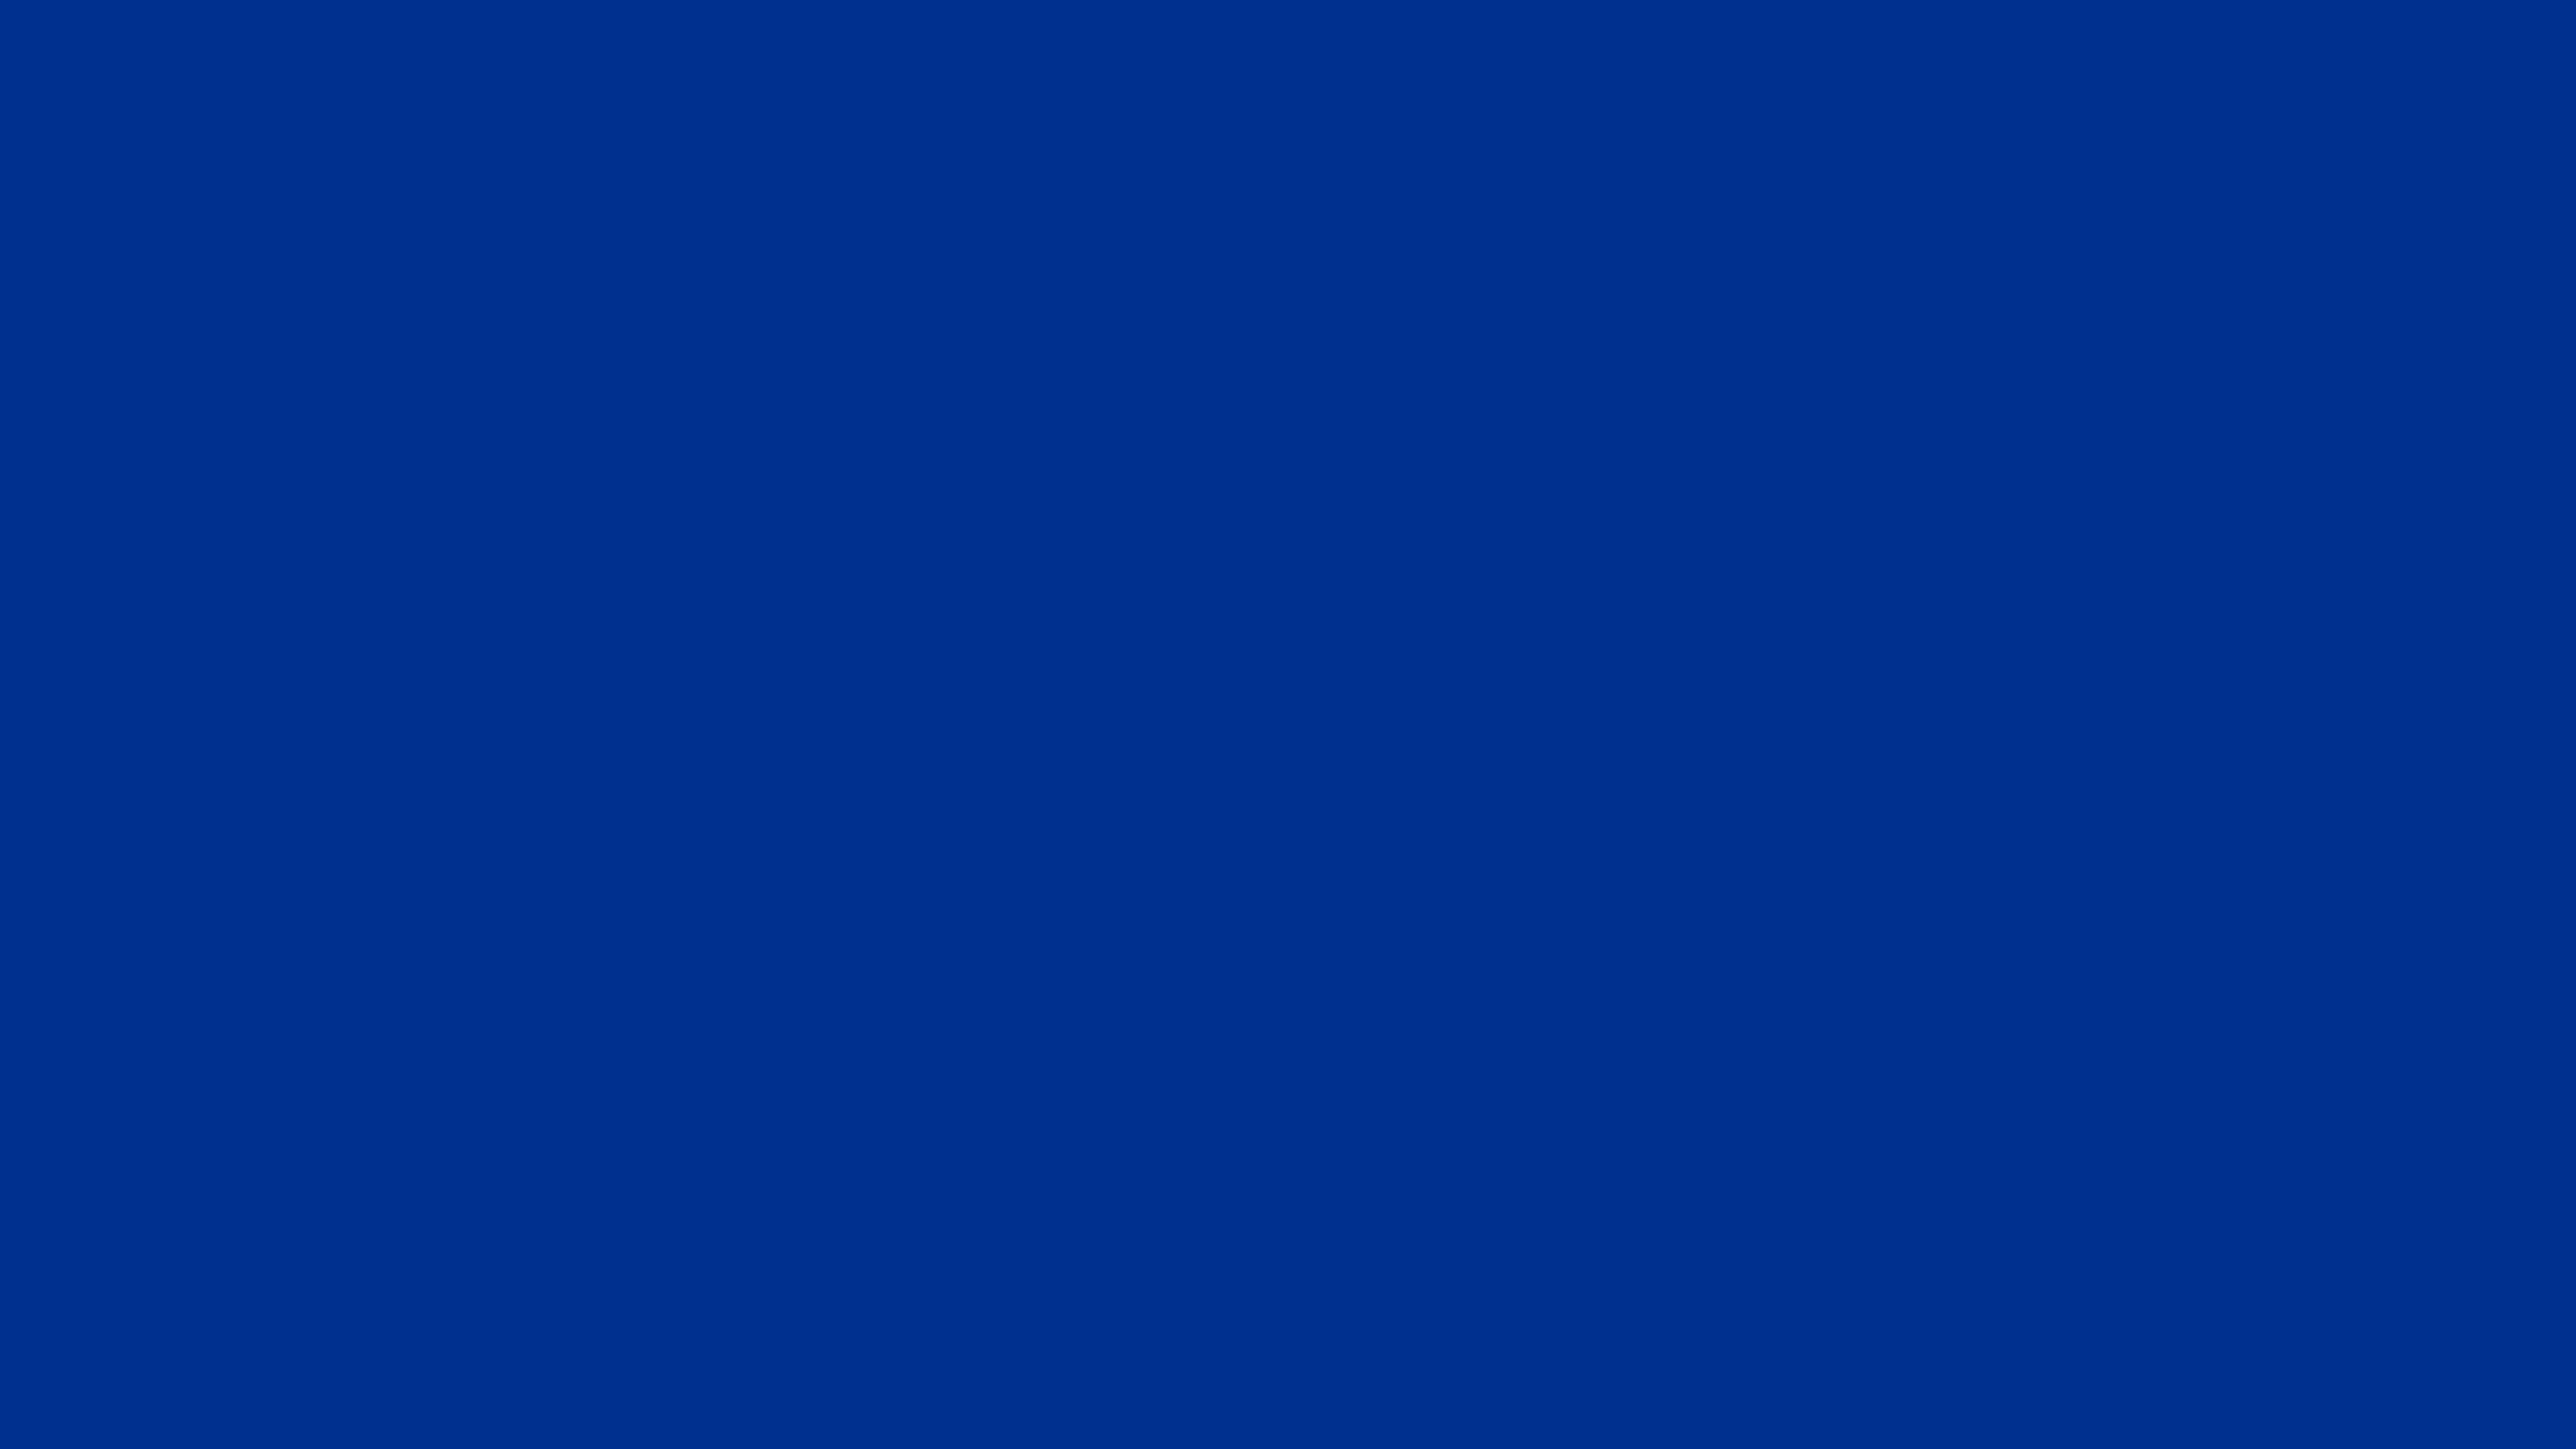 5120x2880 Air Force Dark Blue Solid Color Background